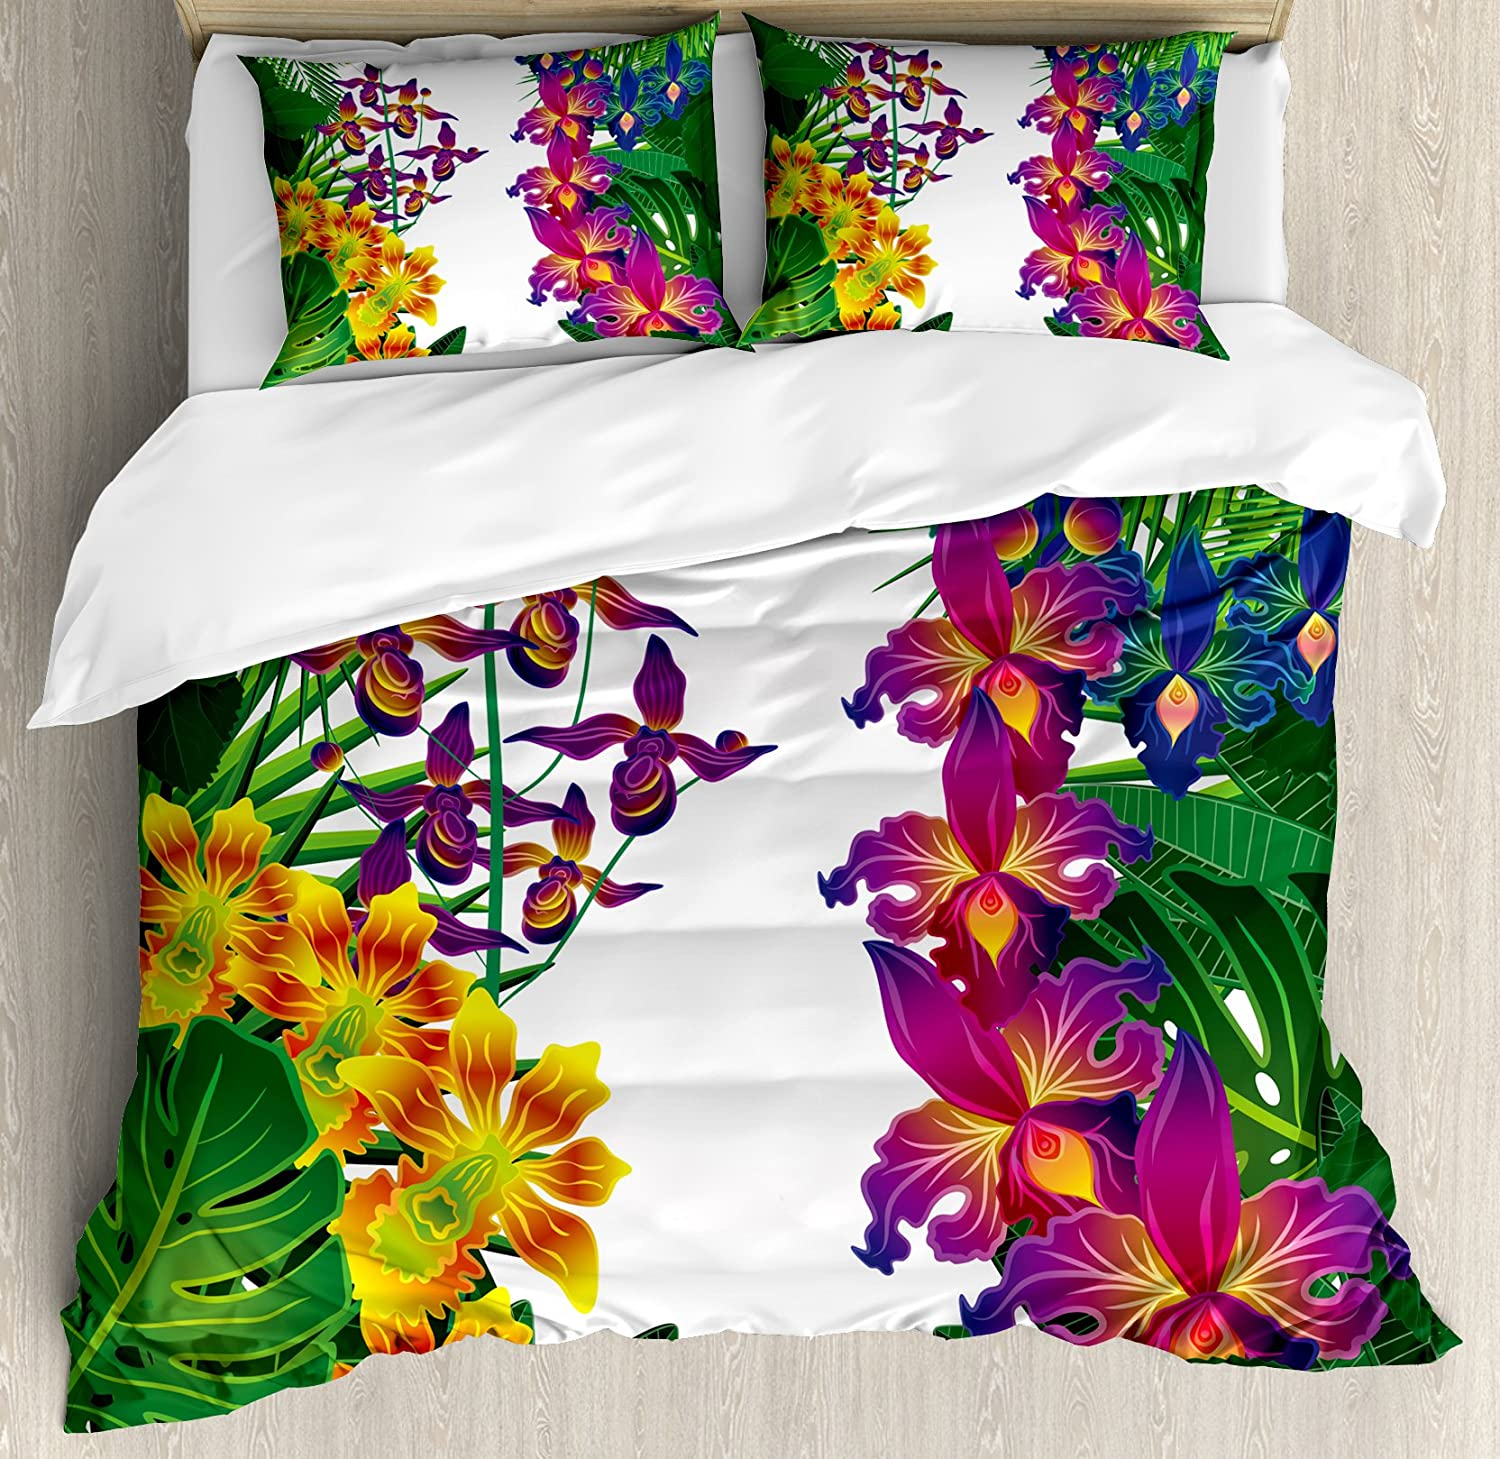 Ambesonne Leaf Duvet Cover Set, Flower Kahili Ginger Bamboo and Orchid Vivid Colored Tropic Accents, Decorative 3 Piece Bedding Set with 2 Pillow Shams, Queen Size, Green Purple